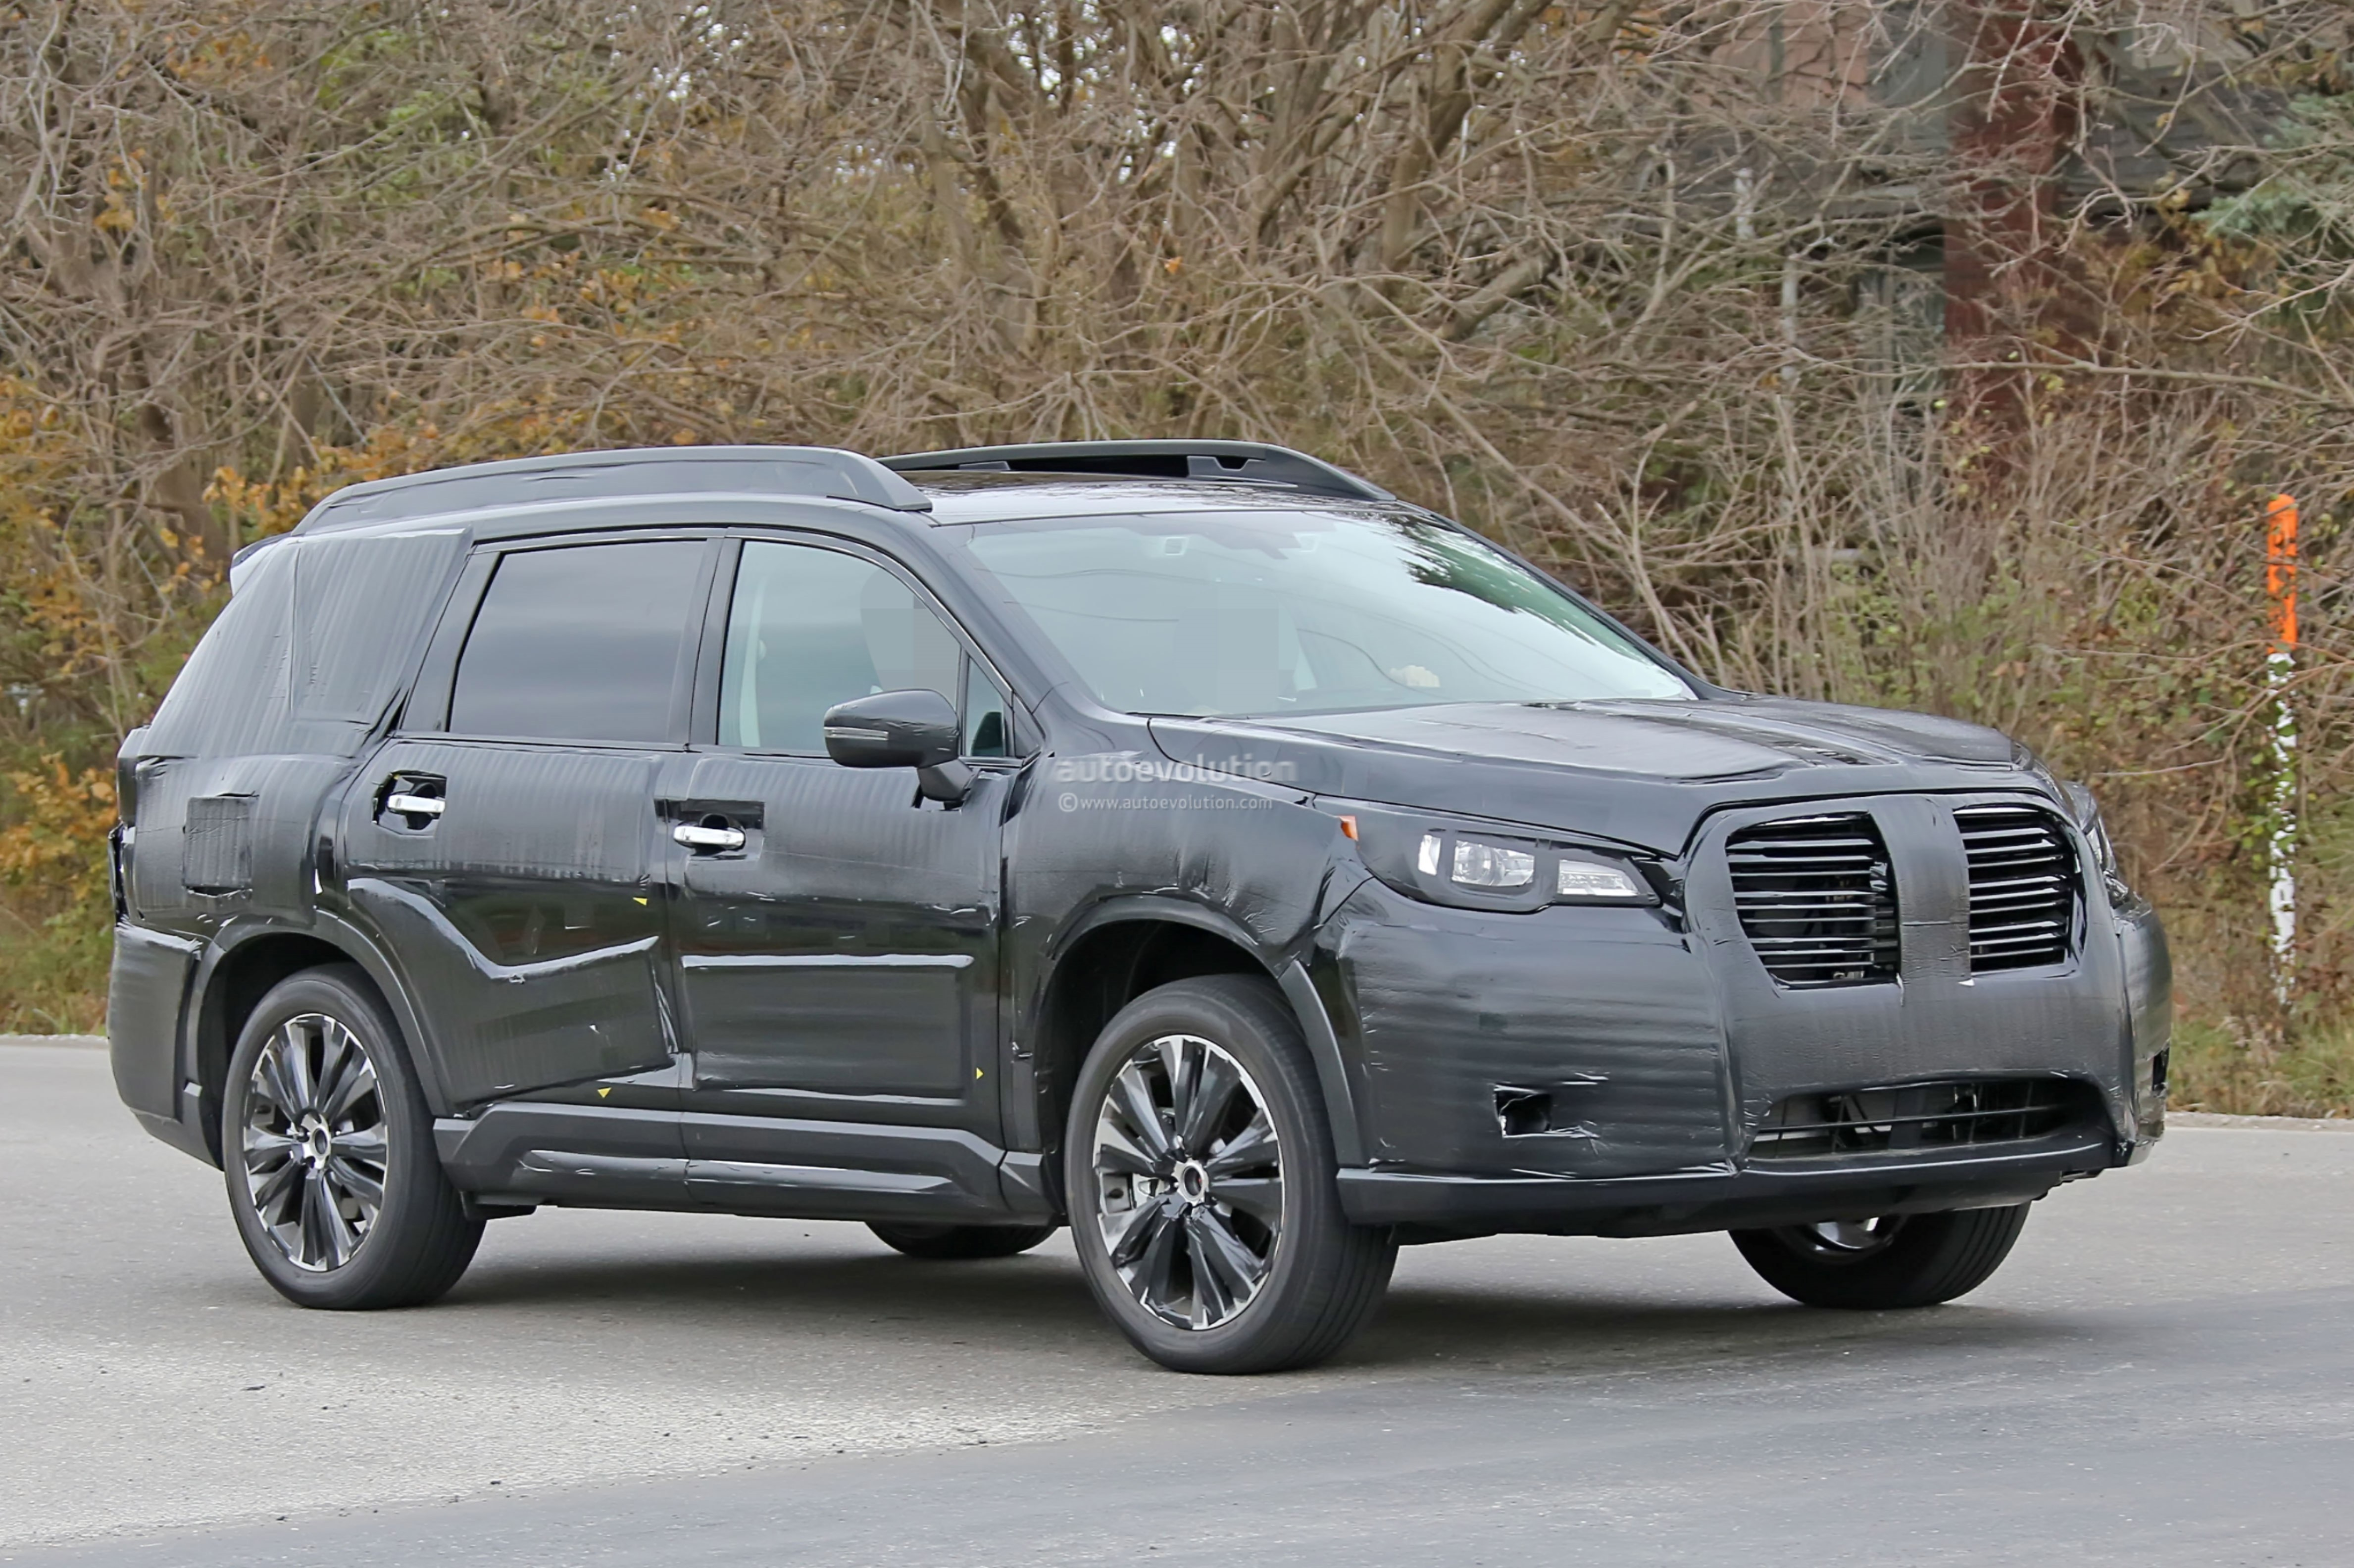 Subaru Ascent Teaser Shows Second And ThirdRow Seats - Cool cars with 3rd row seating